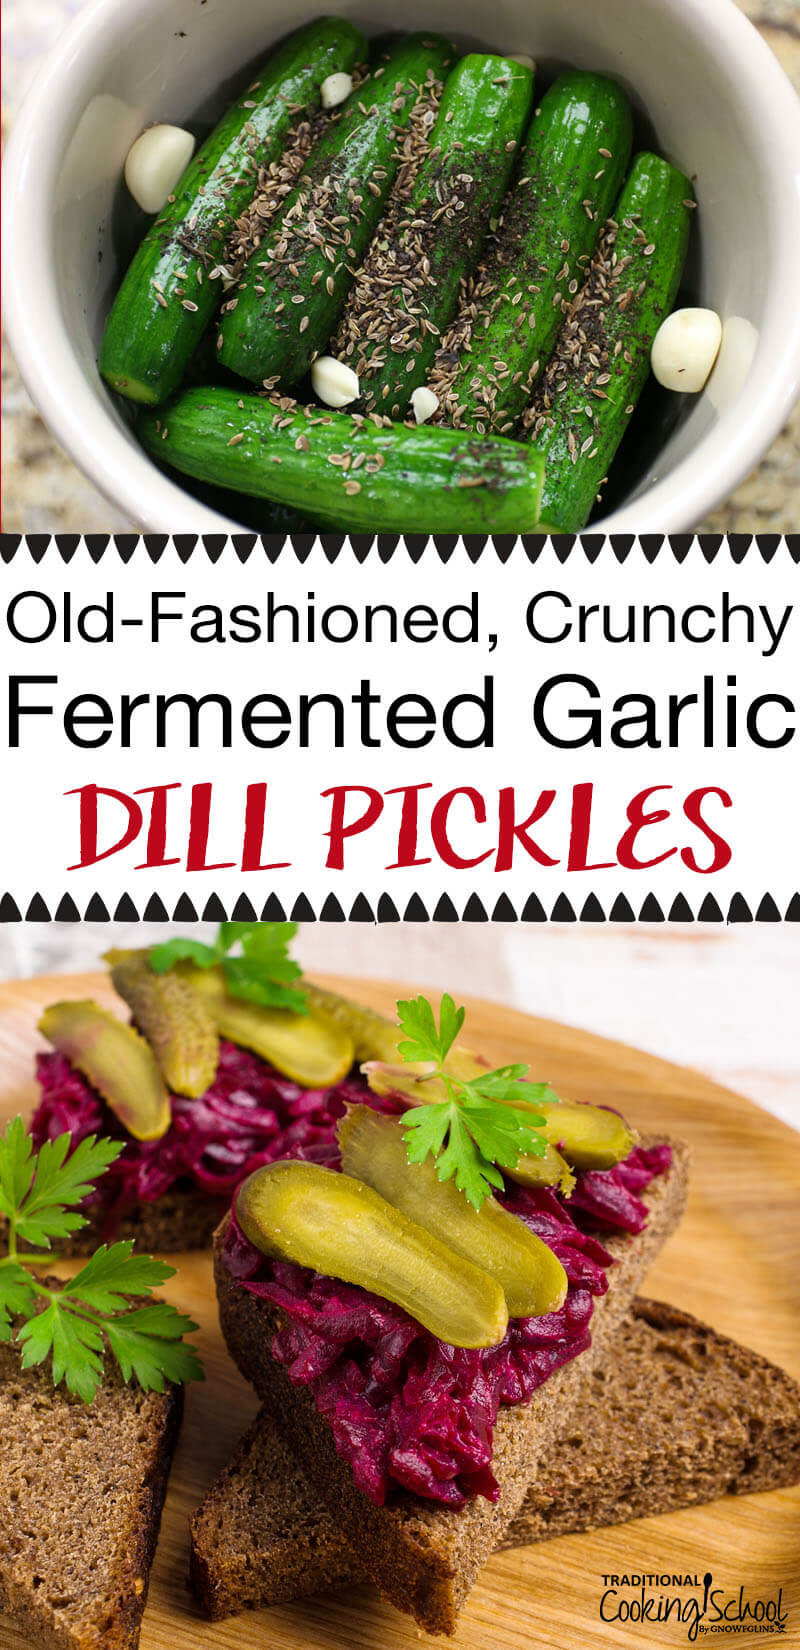 These are NOT the vinegar pickles you find in the store! Once pickled, there's an explosion of vitamins, enzymes, probiotics, beneficial acids, and most importantly... a delicious crunch! And I make them in one of my favorite kitchen tools -- a fermenting crock from Ohio Stoneware!